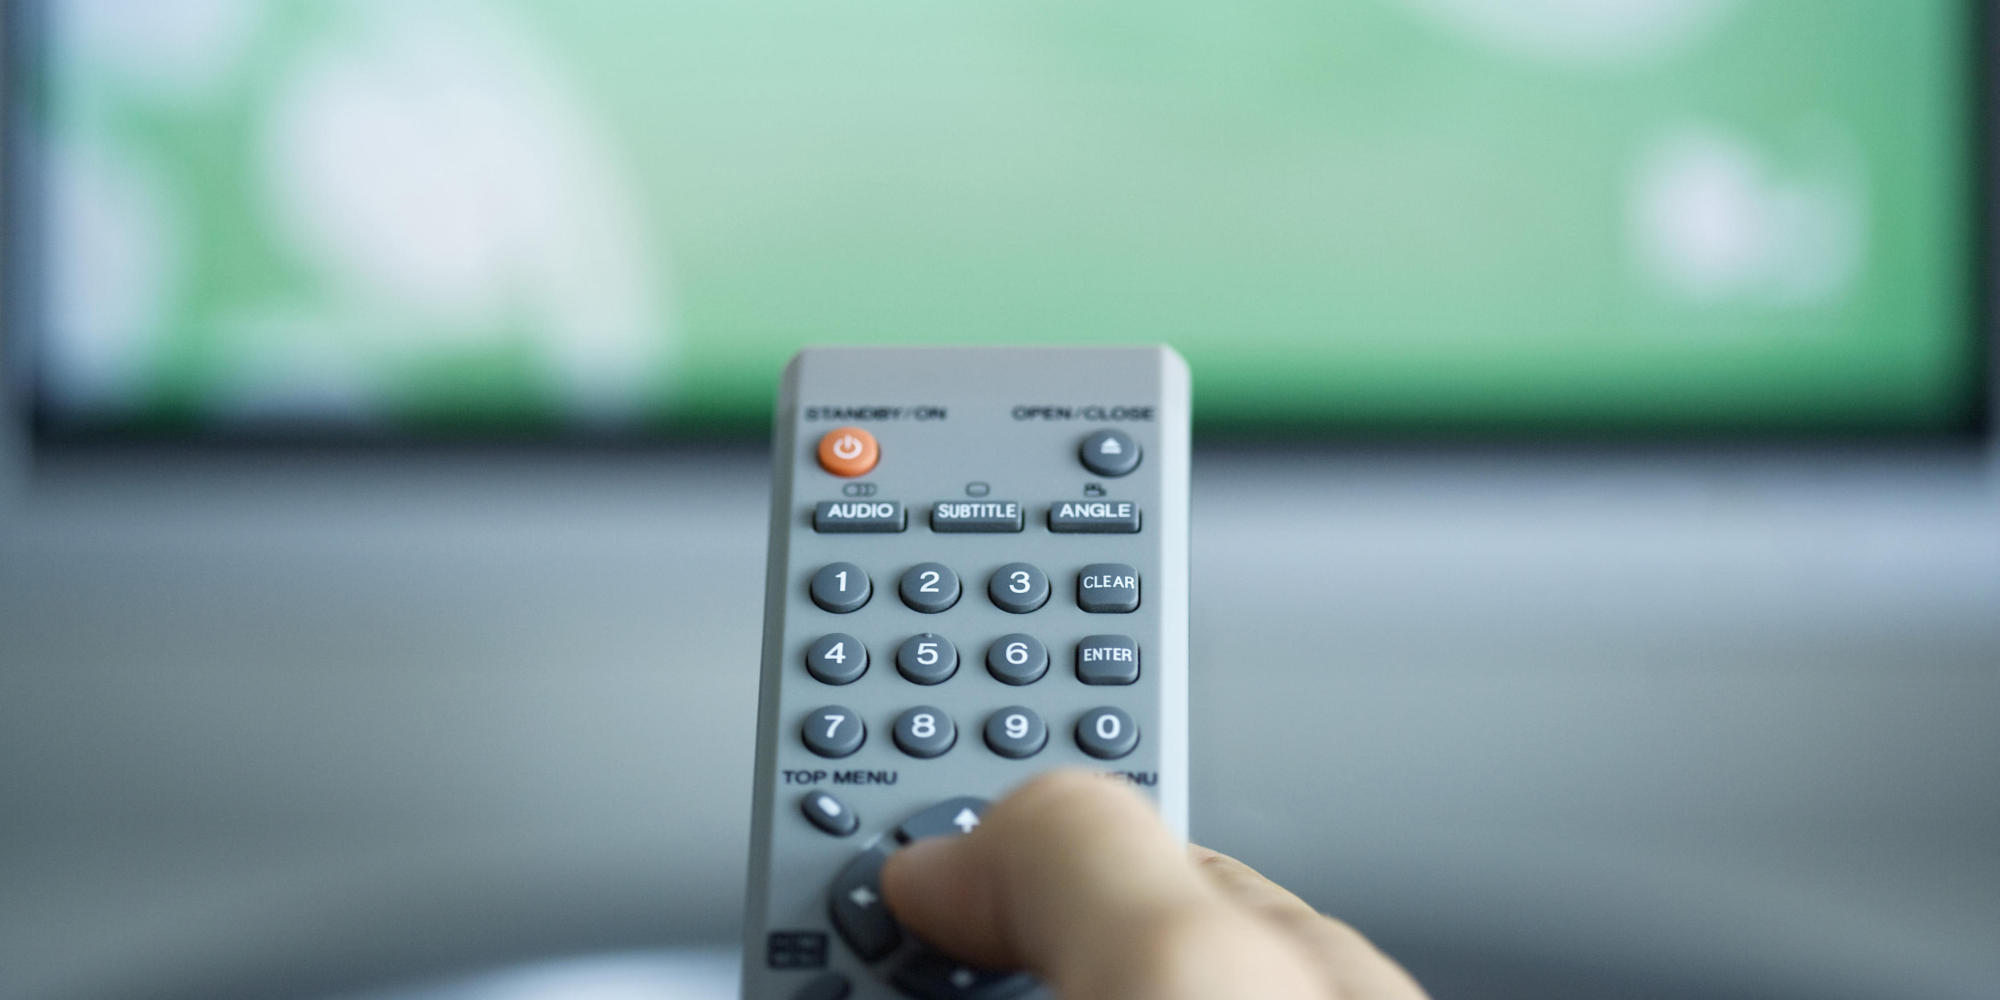 Person watching TV, using remote control to change channel, cropped